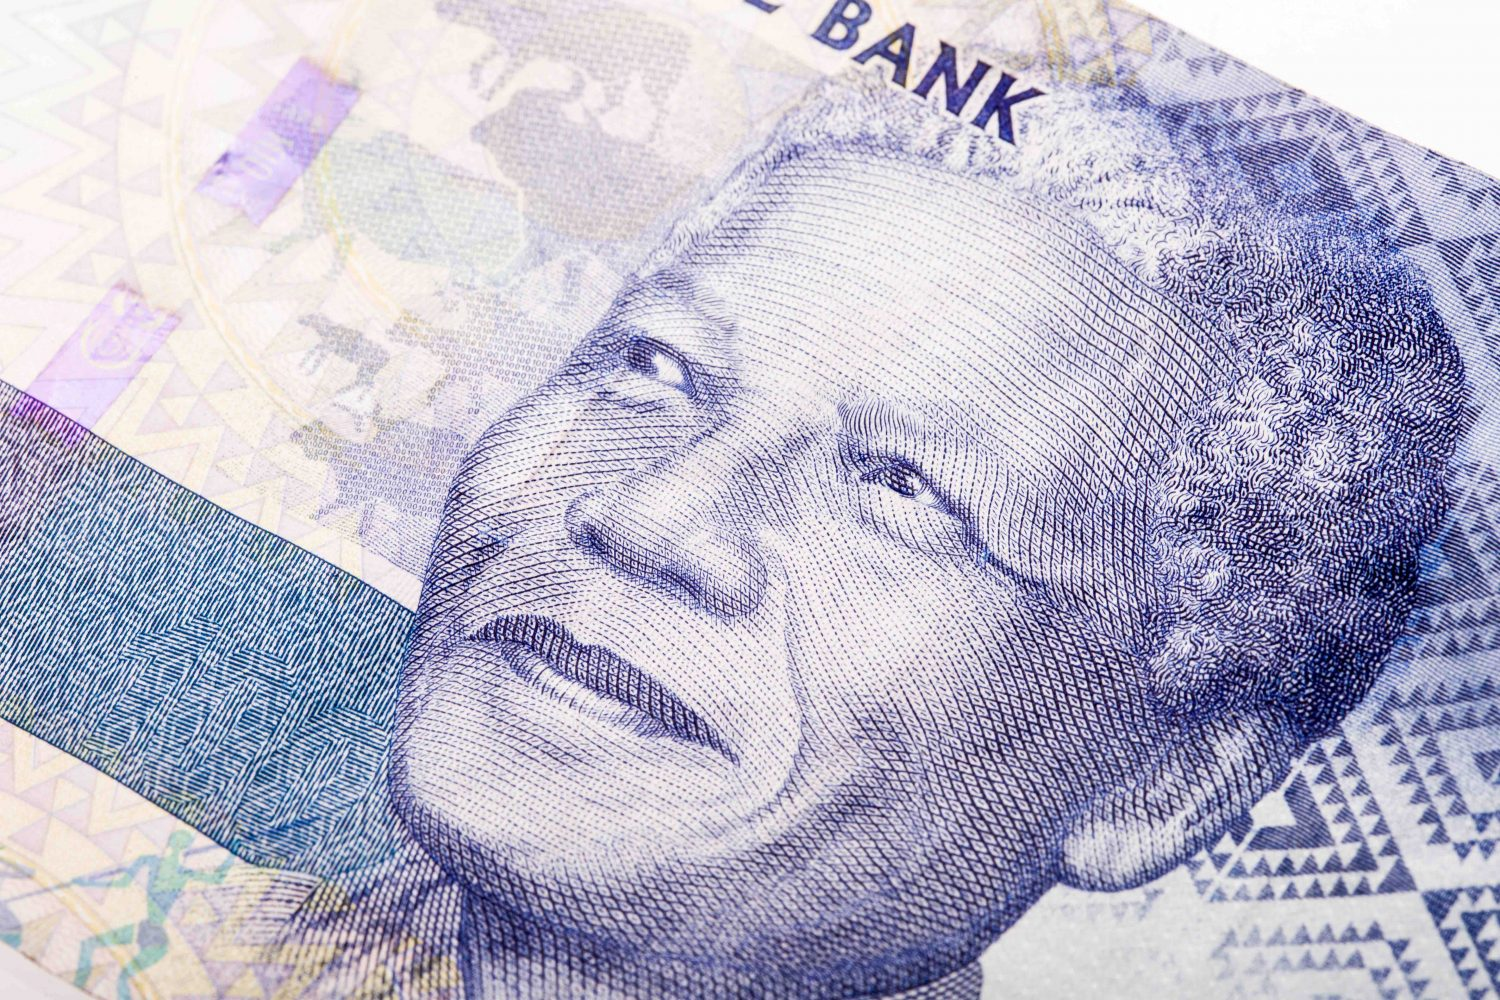 south africa, rand